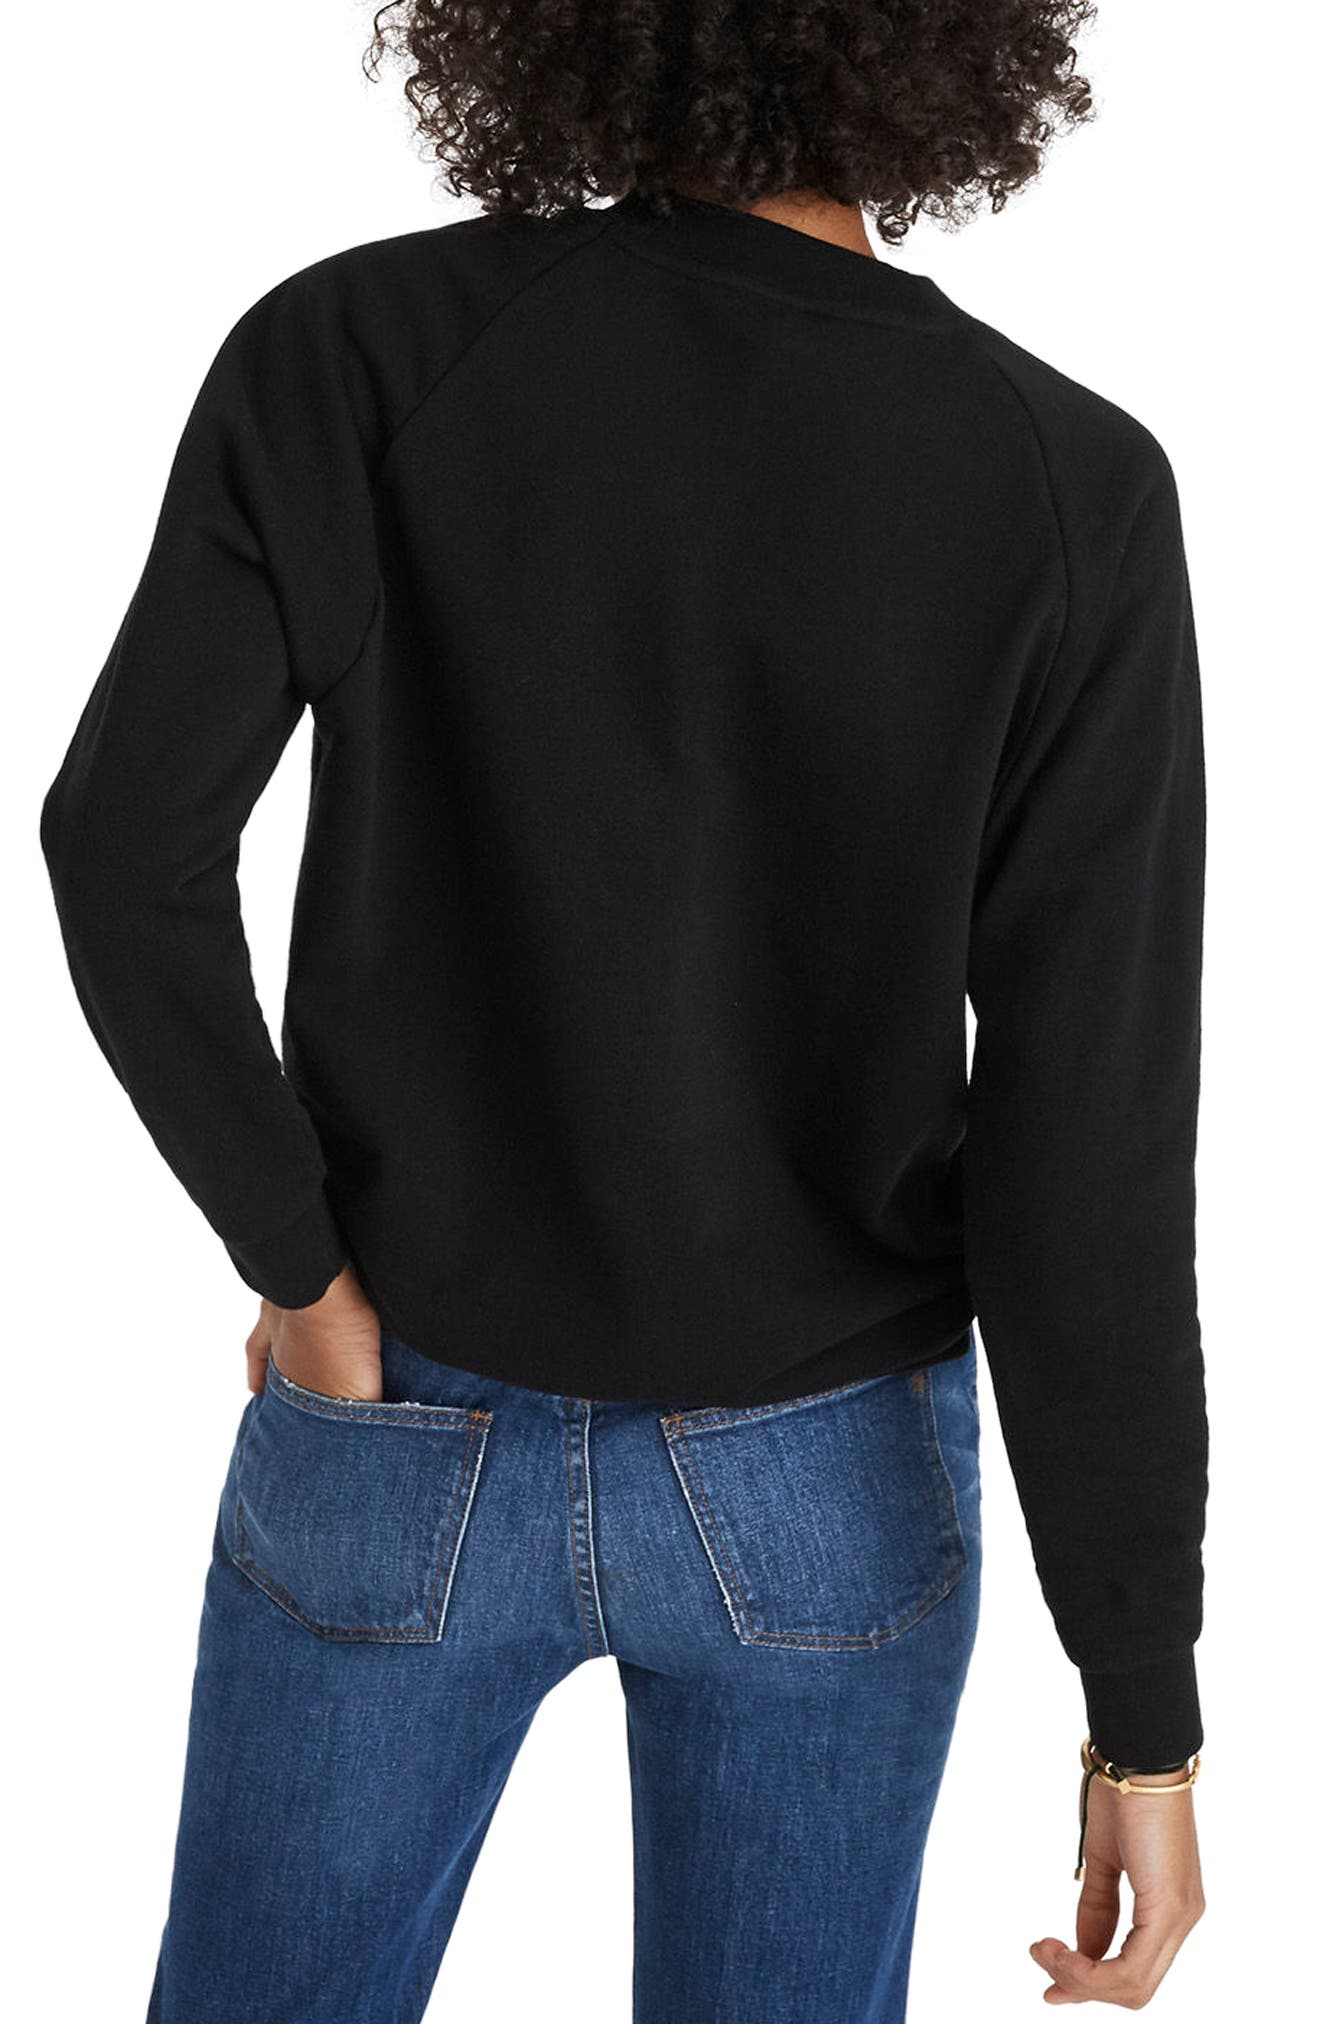 Rêveur Drawstring Sweatshirt,                             Alternate thumbnail 2, color,